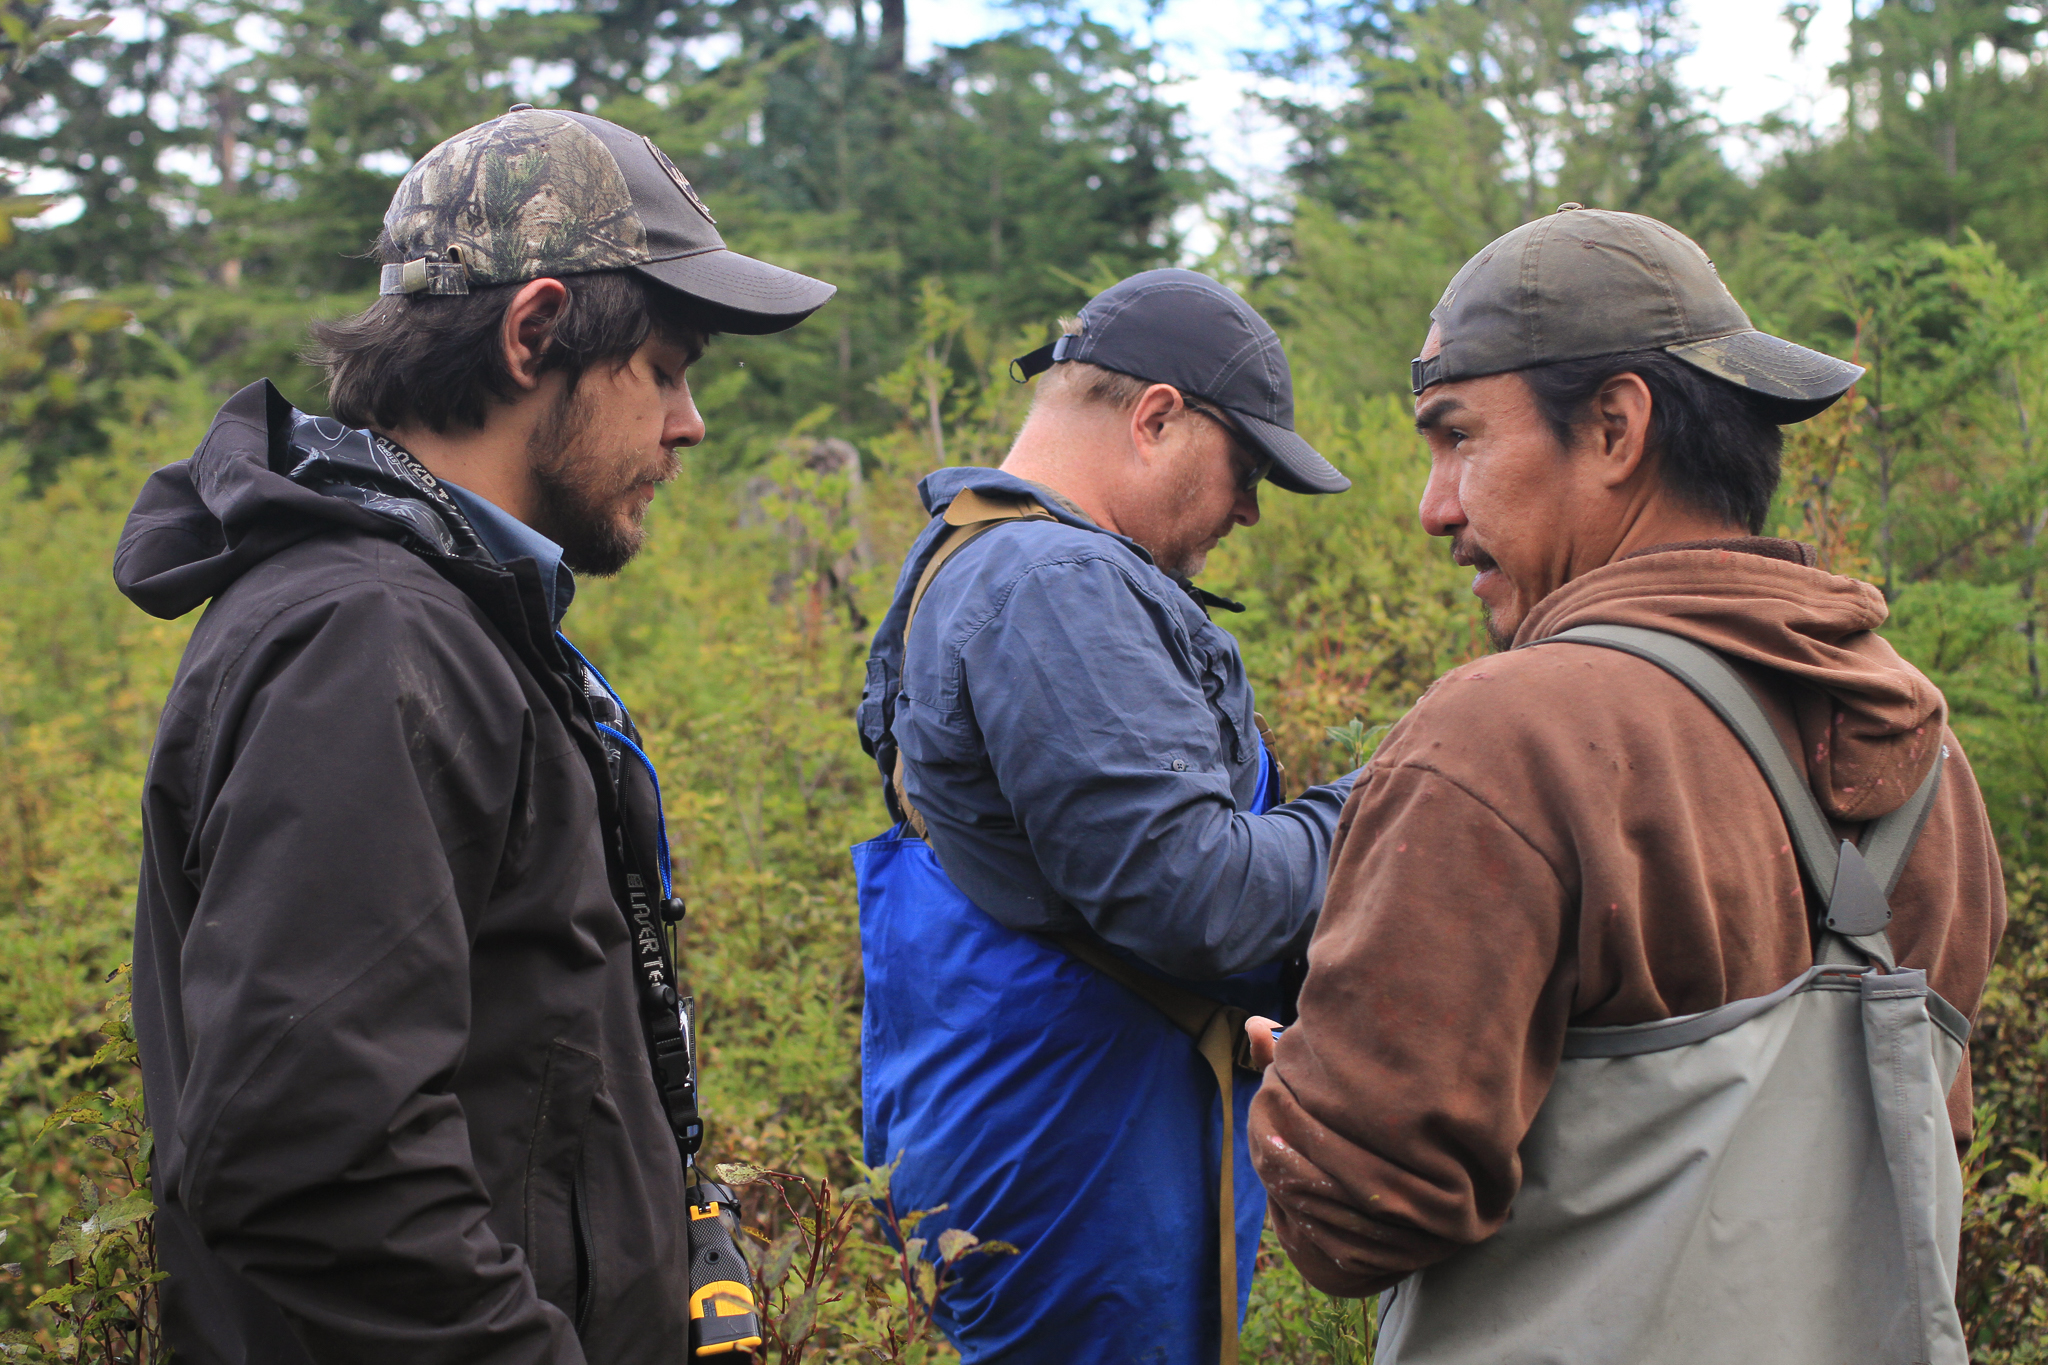 From left, Donovan Smith, Bob Christensen, and Phillip Sharclane prepare to survey an old clearcut on Sealaska land for the Hoonah Native Forest Partnership on Southeast Alaska's Chichagof Island.